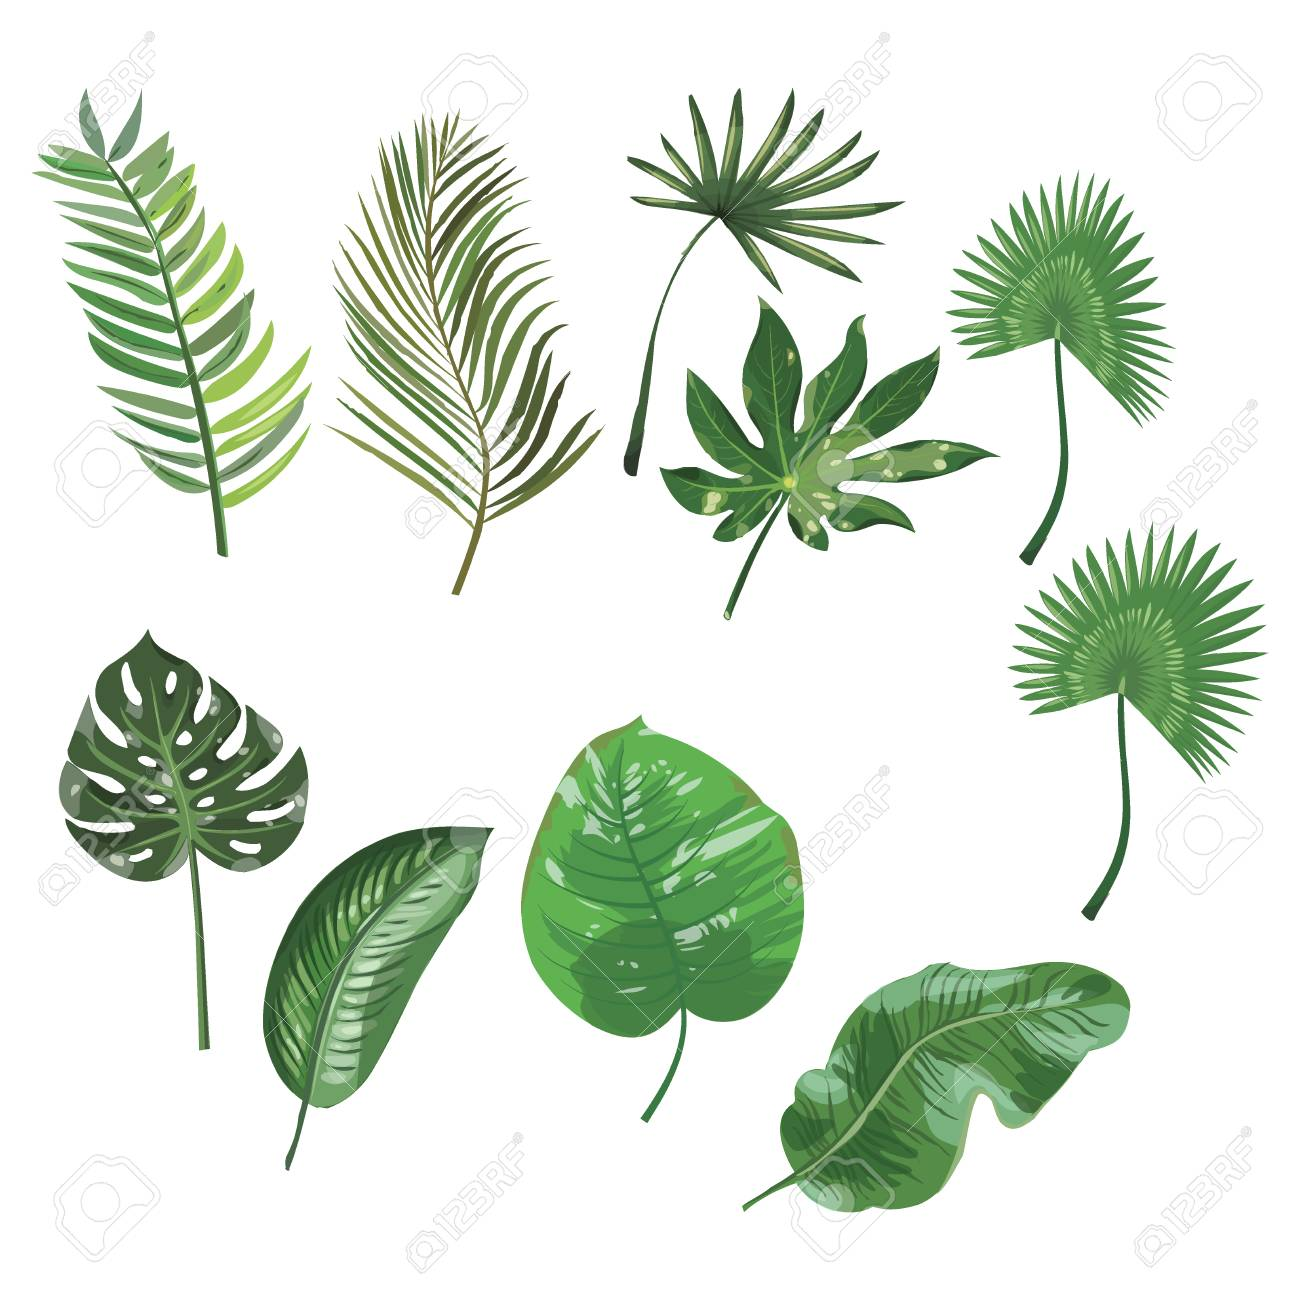 Set Of Leaves Of Tropical Plants Collection Of Exotic Leaves Royalty Free Cliparts Vectors And Stock Illustration Image 90434596 All the pictures were fully created in adobe illustrator. set of leaves of tropical plants collection of exotic leaves